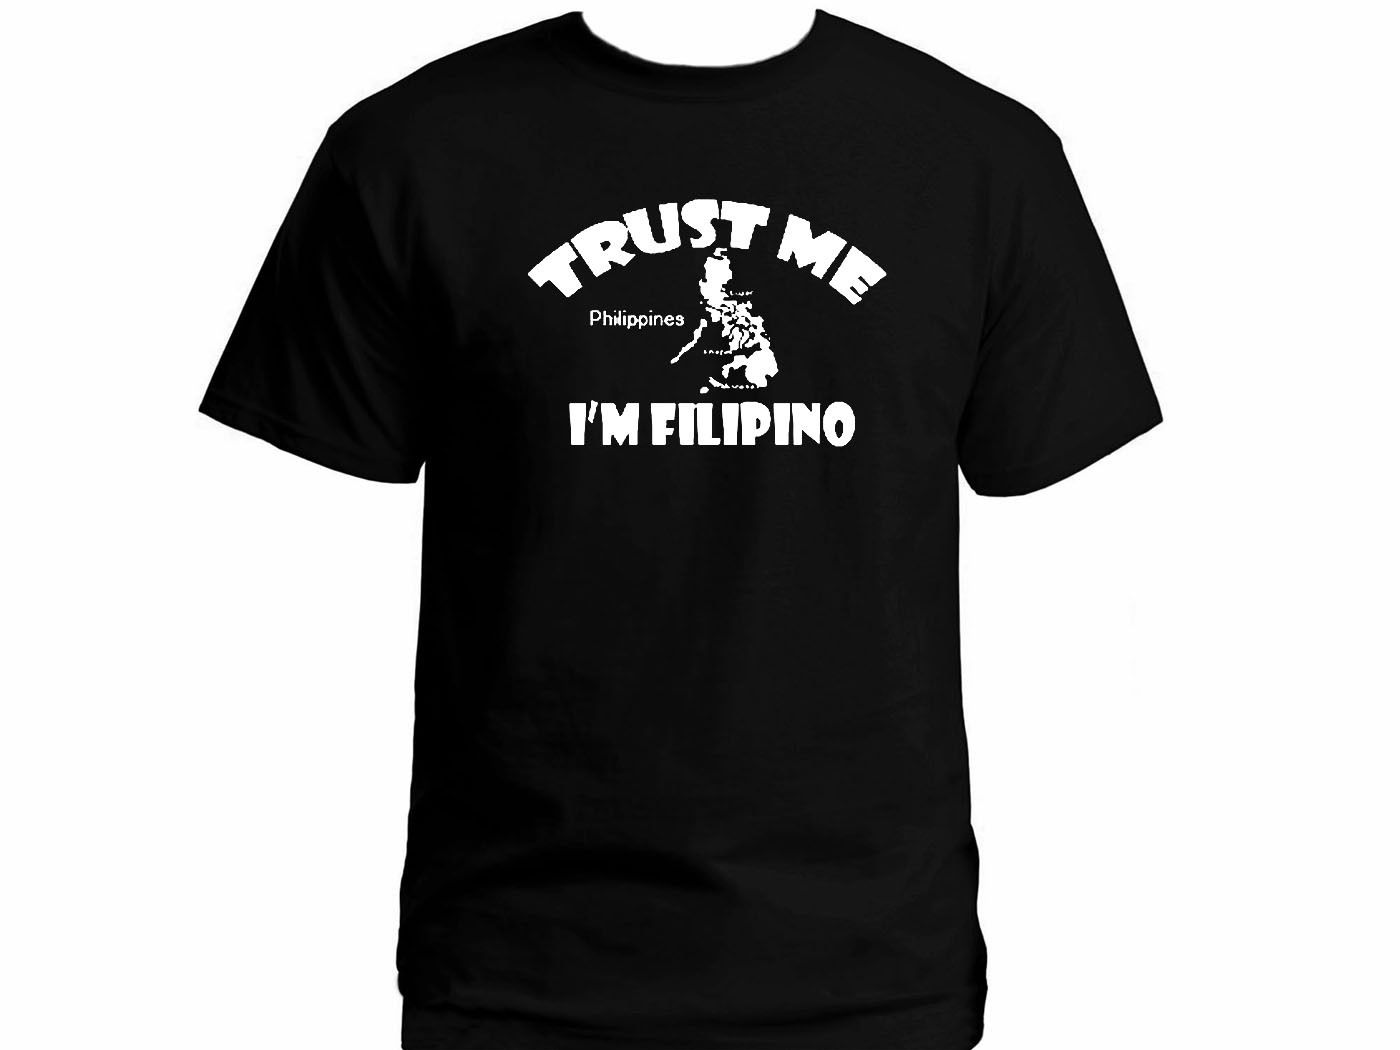 Trust me I'm Filipino Pinoy funny Philippines black 100% cotton new t-shirt